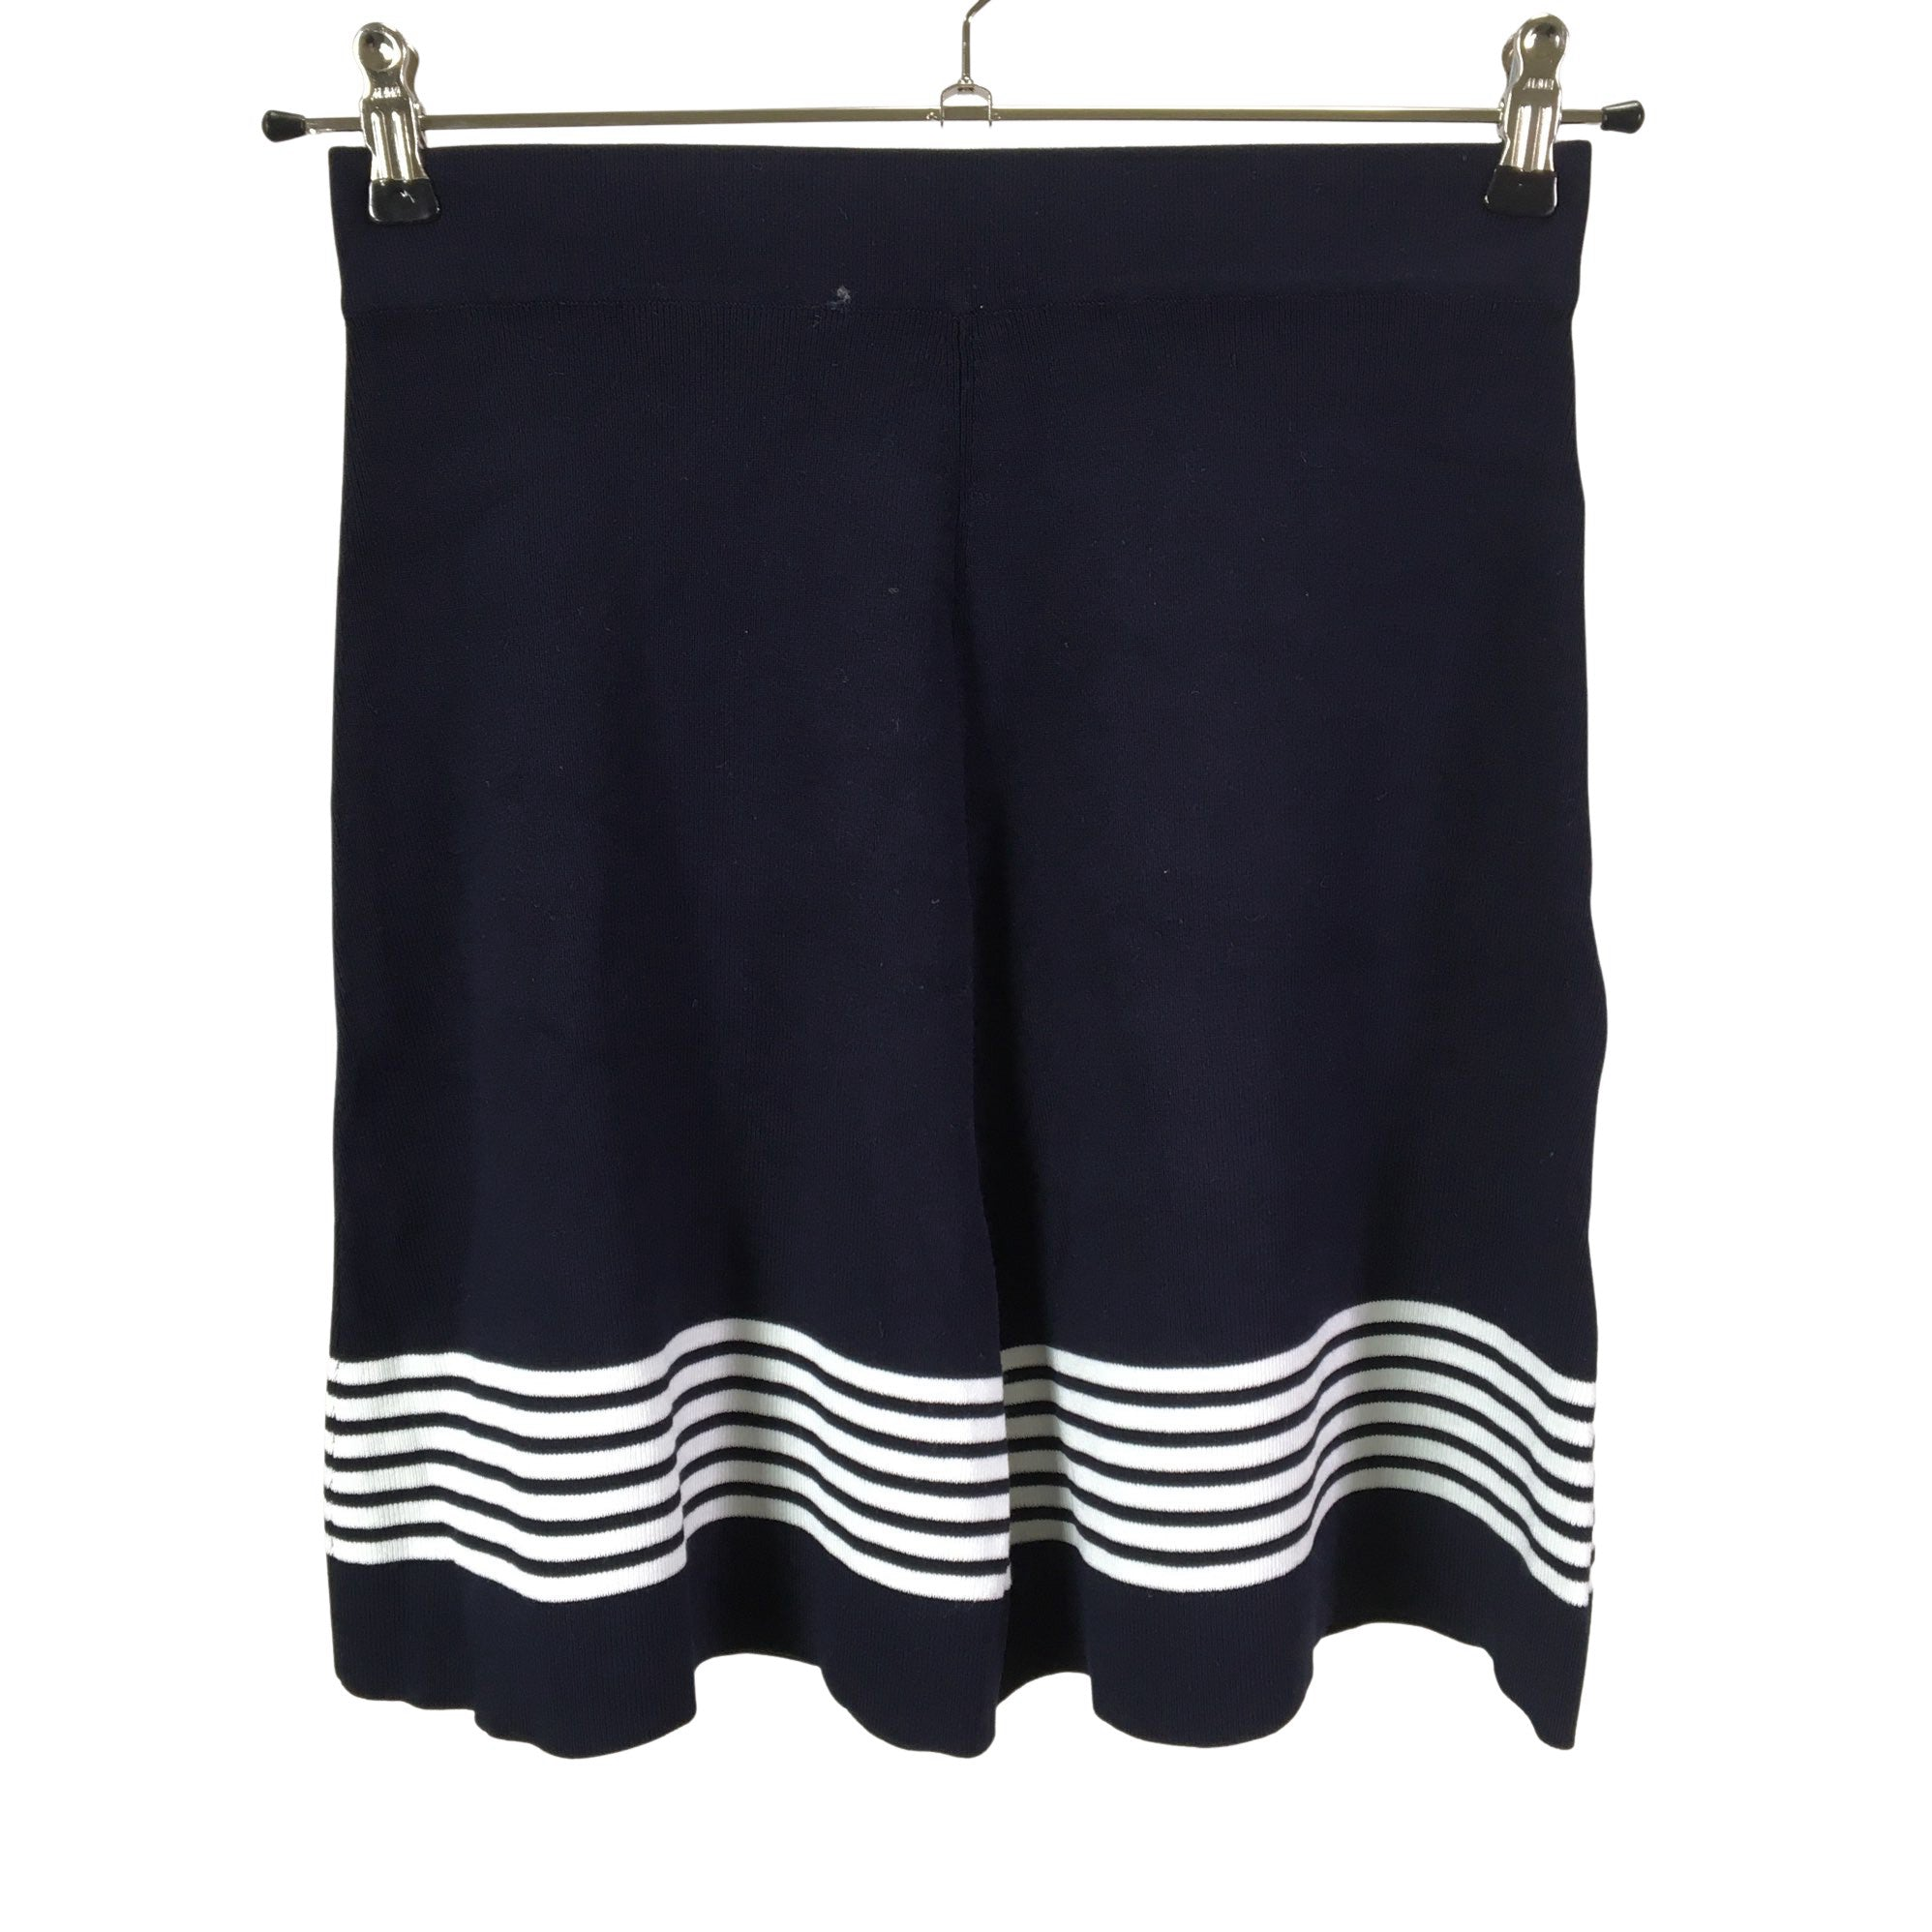 Knit skirt, size 34 © Emmy Clothing Company Oy